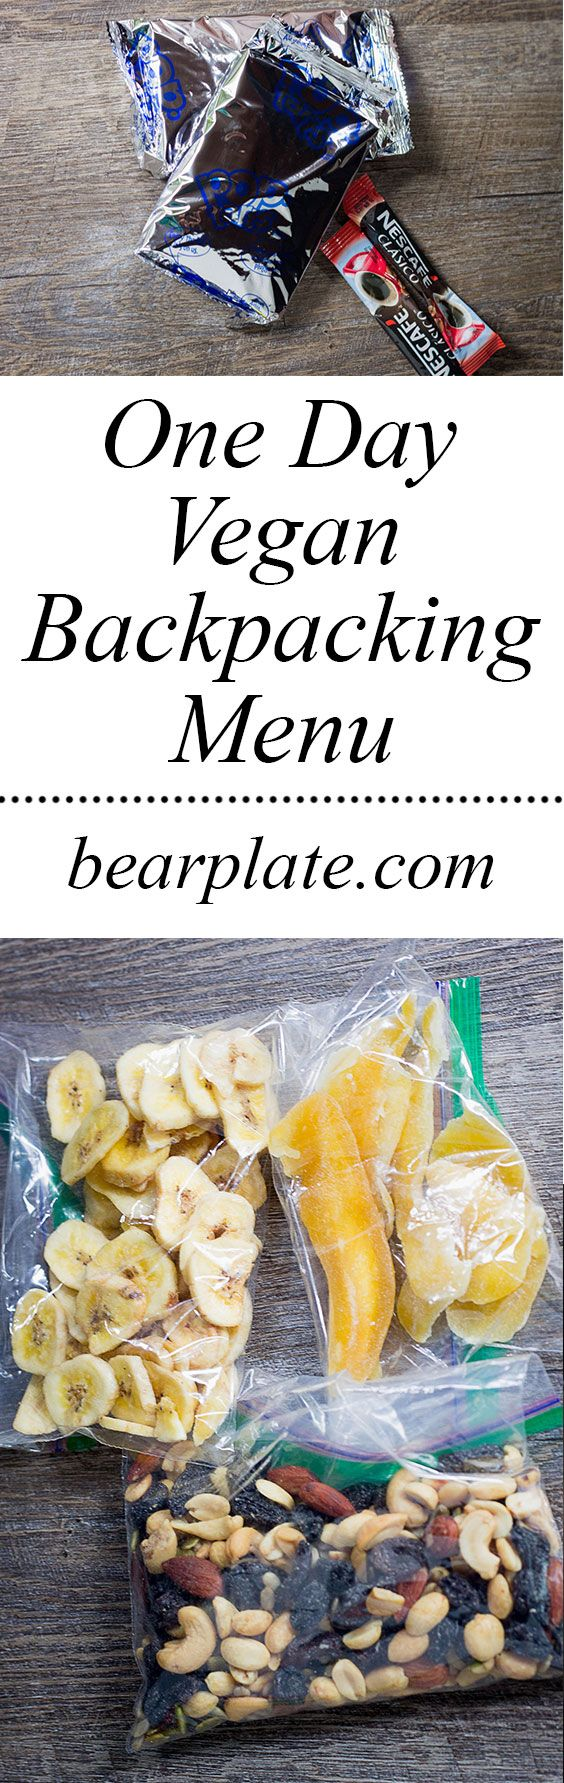 Do you plan on doing some backpacking this summer? Use this handy guide to make sure you have nutrient-dense meals prepared!